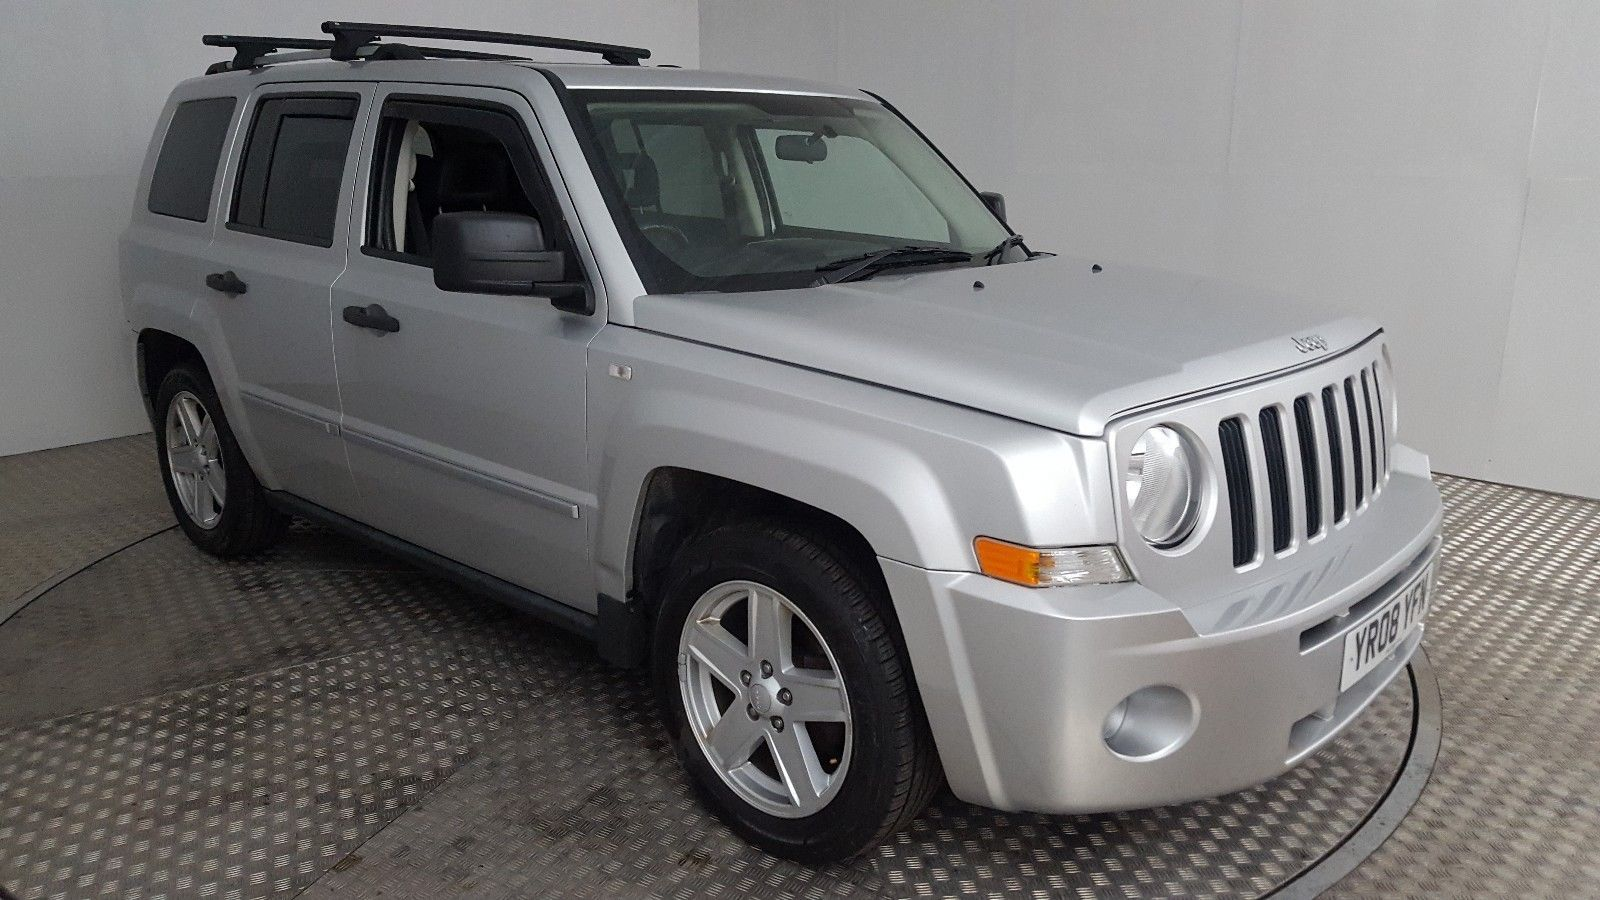 ebay 2008 jeep patriot limited crd silver 2 0 diesel manual rh pinterest co  uk 2008 jeep commander manual download 2008 jeep commander repair manual